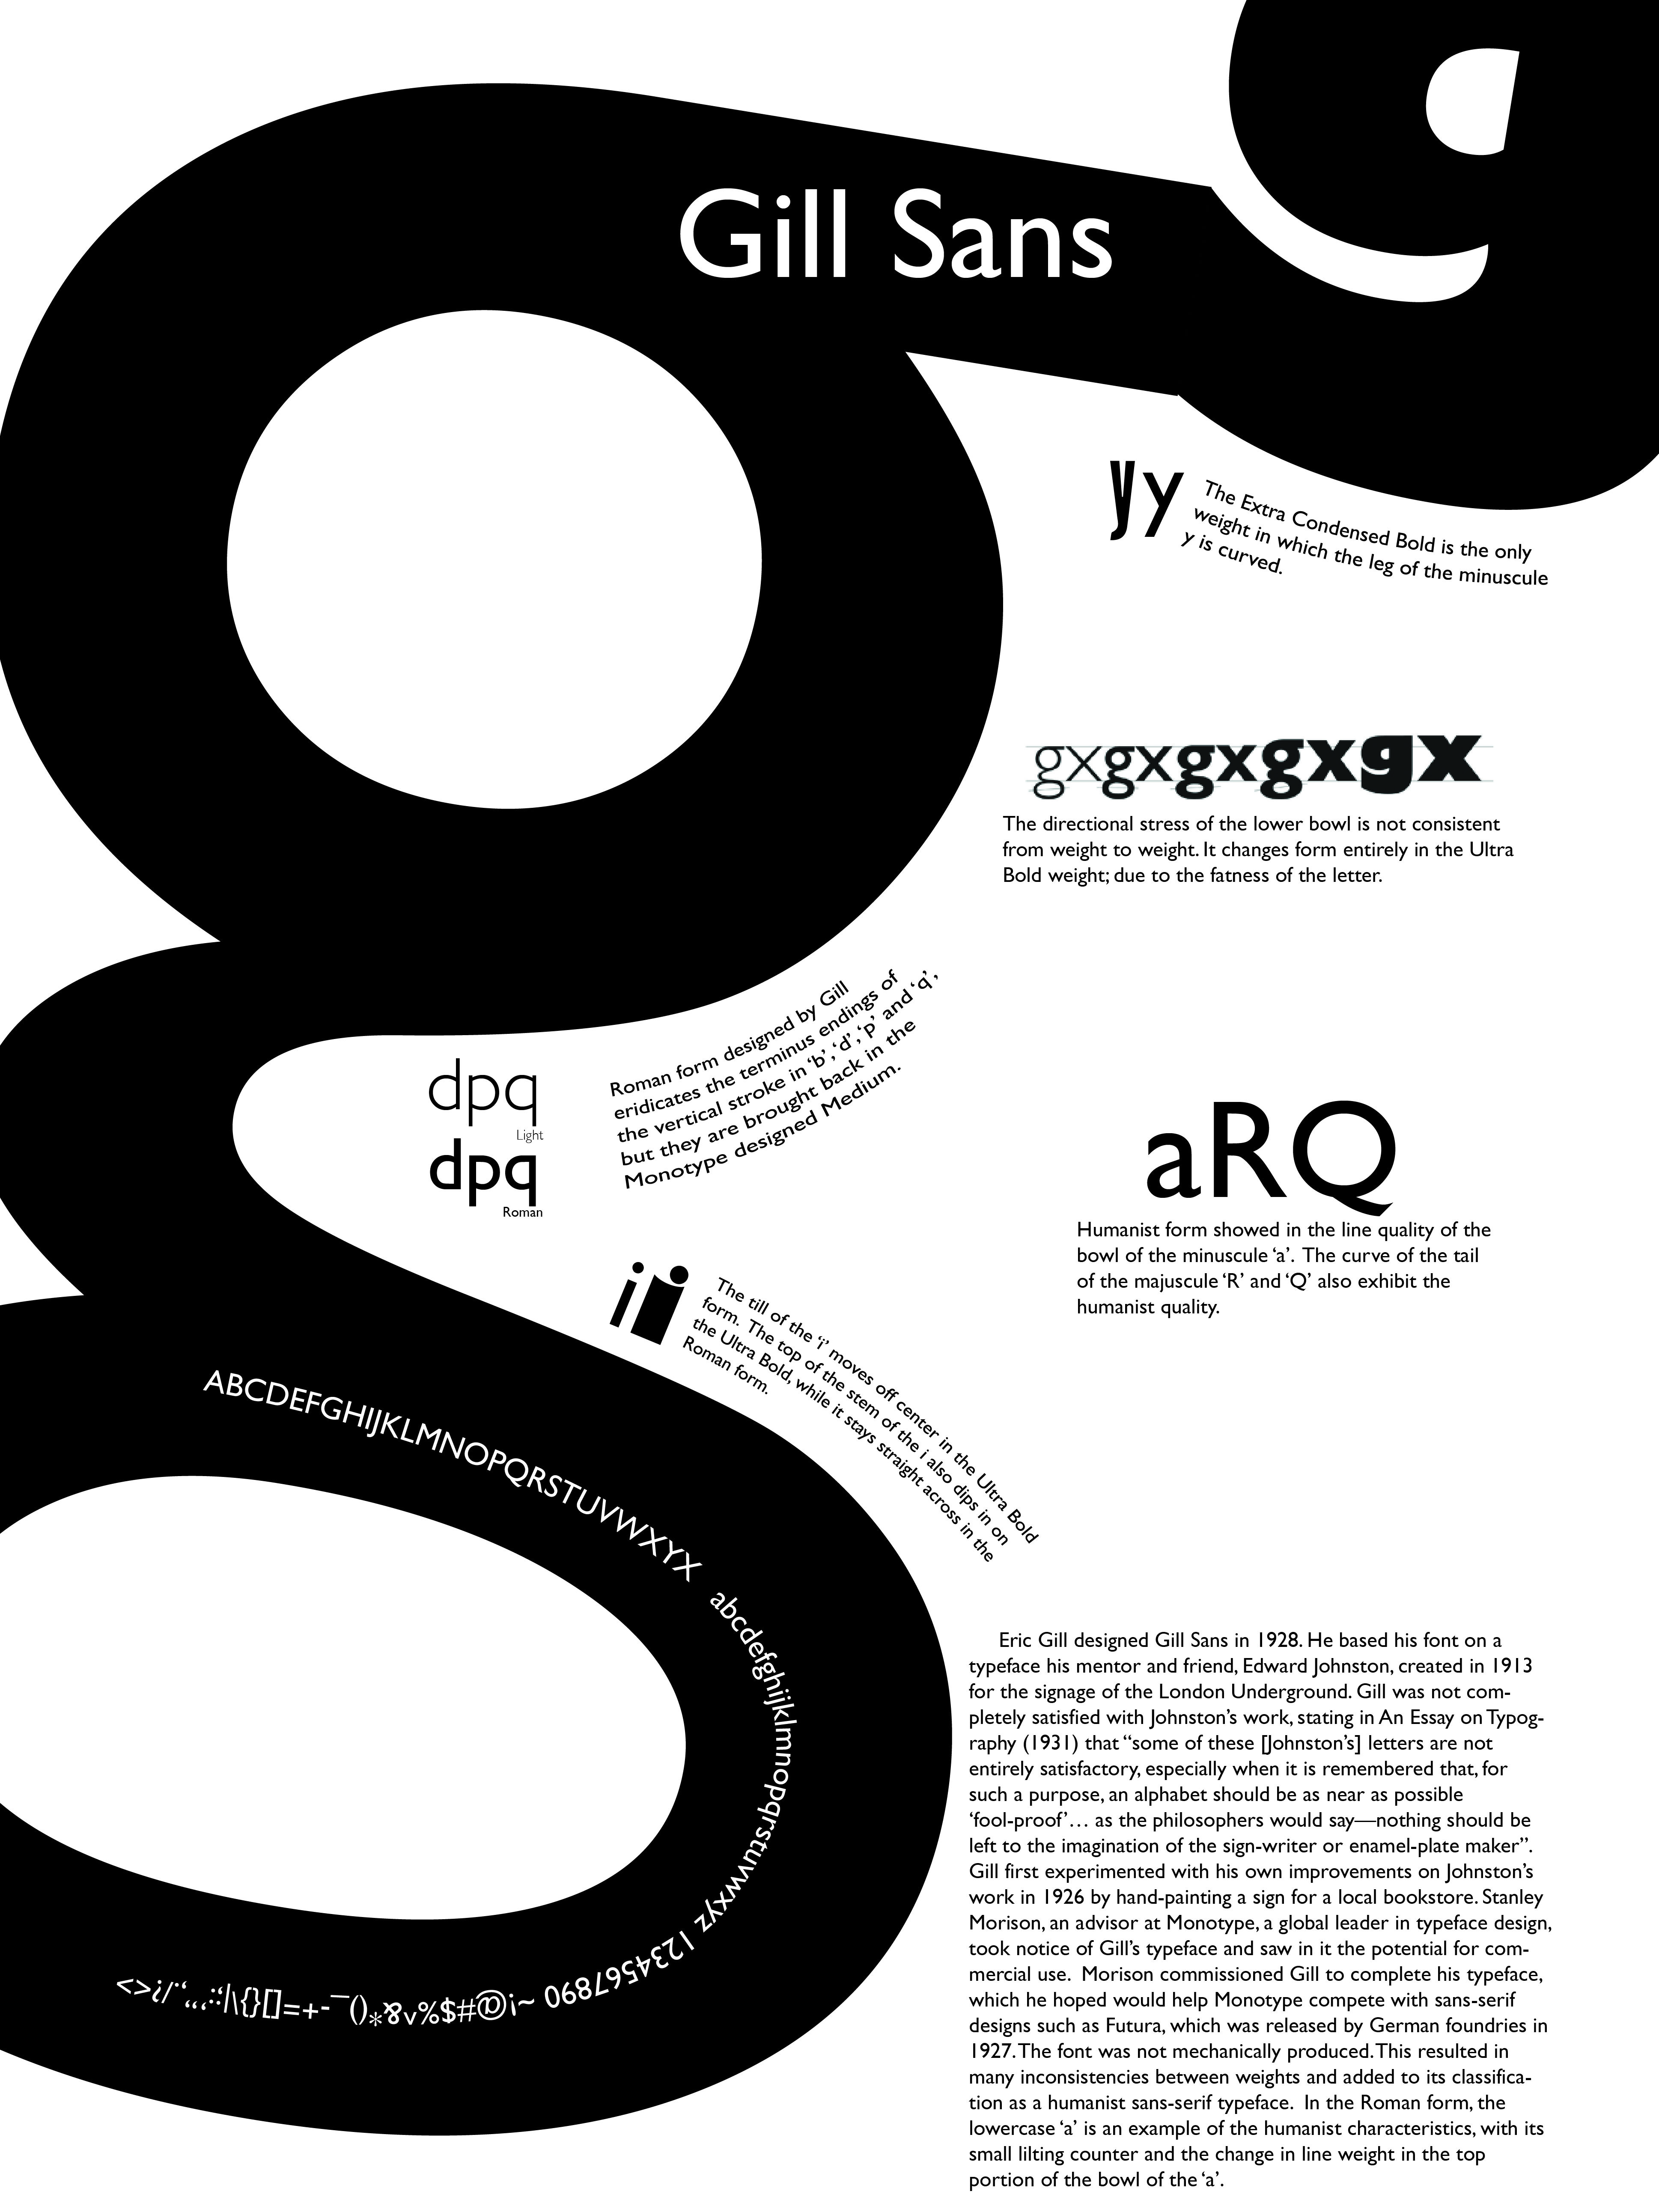 Eric Gill got it wrong; a re-evaluation of Gill Sans